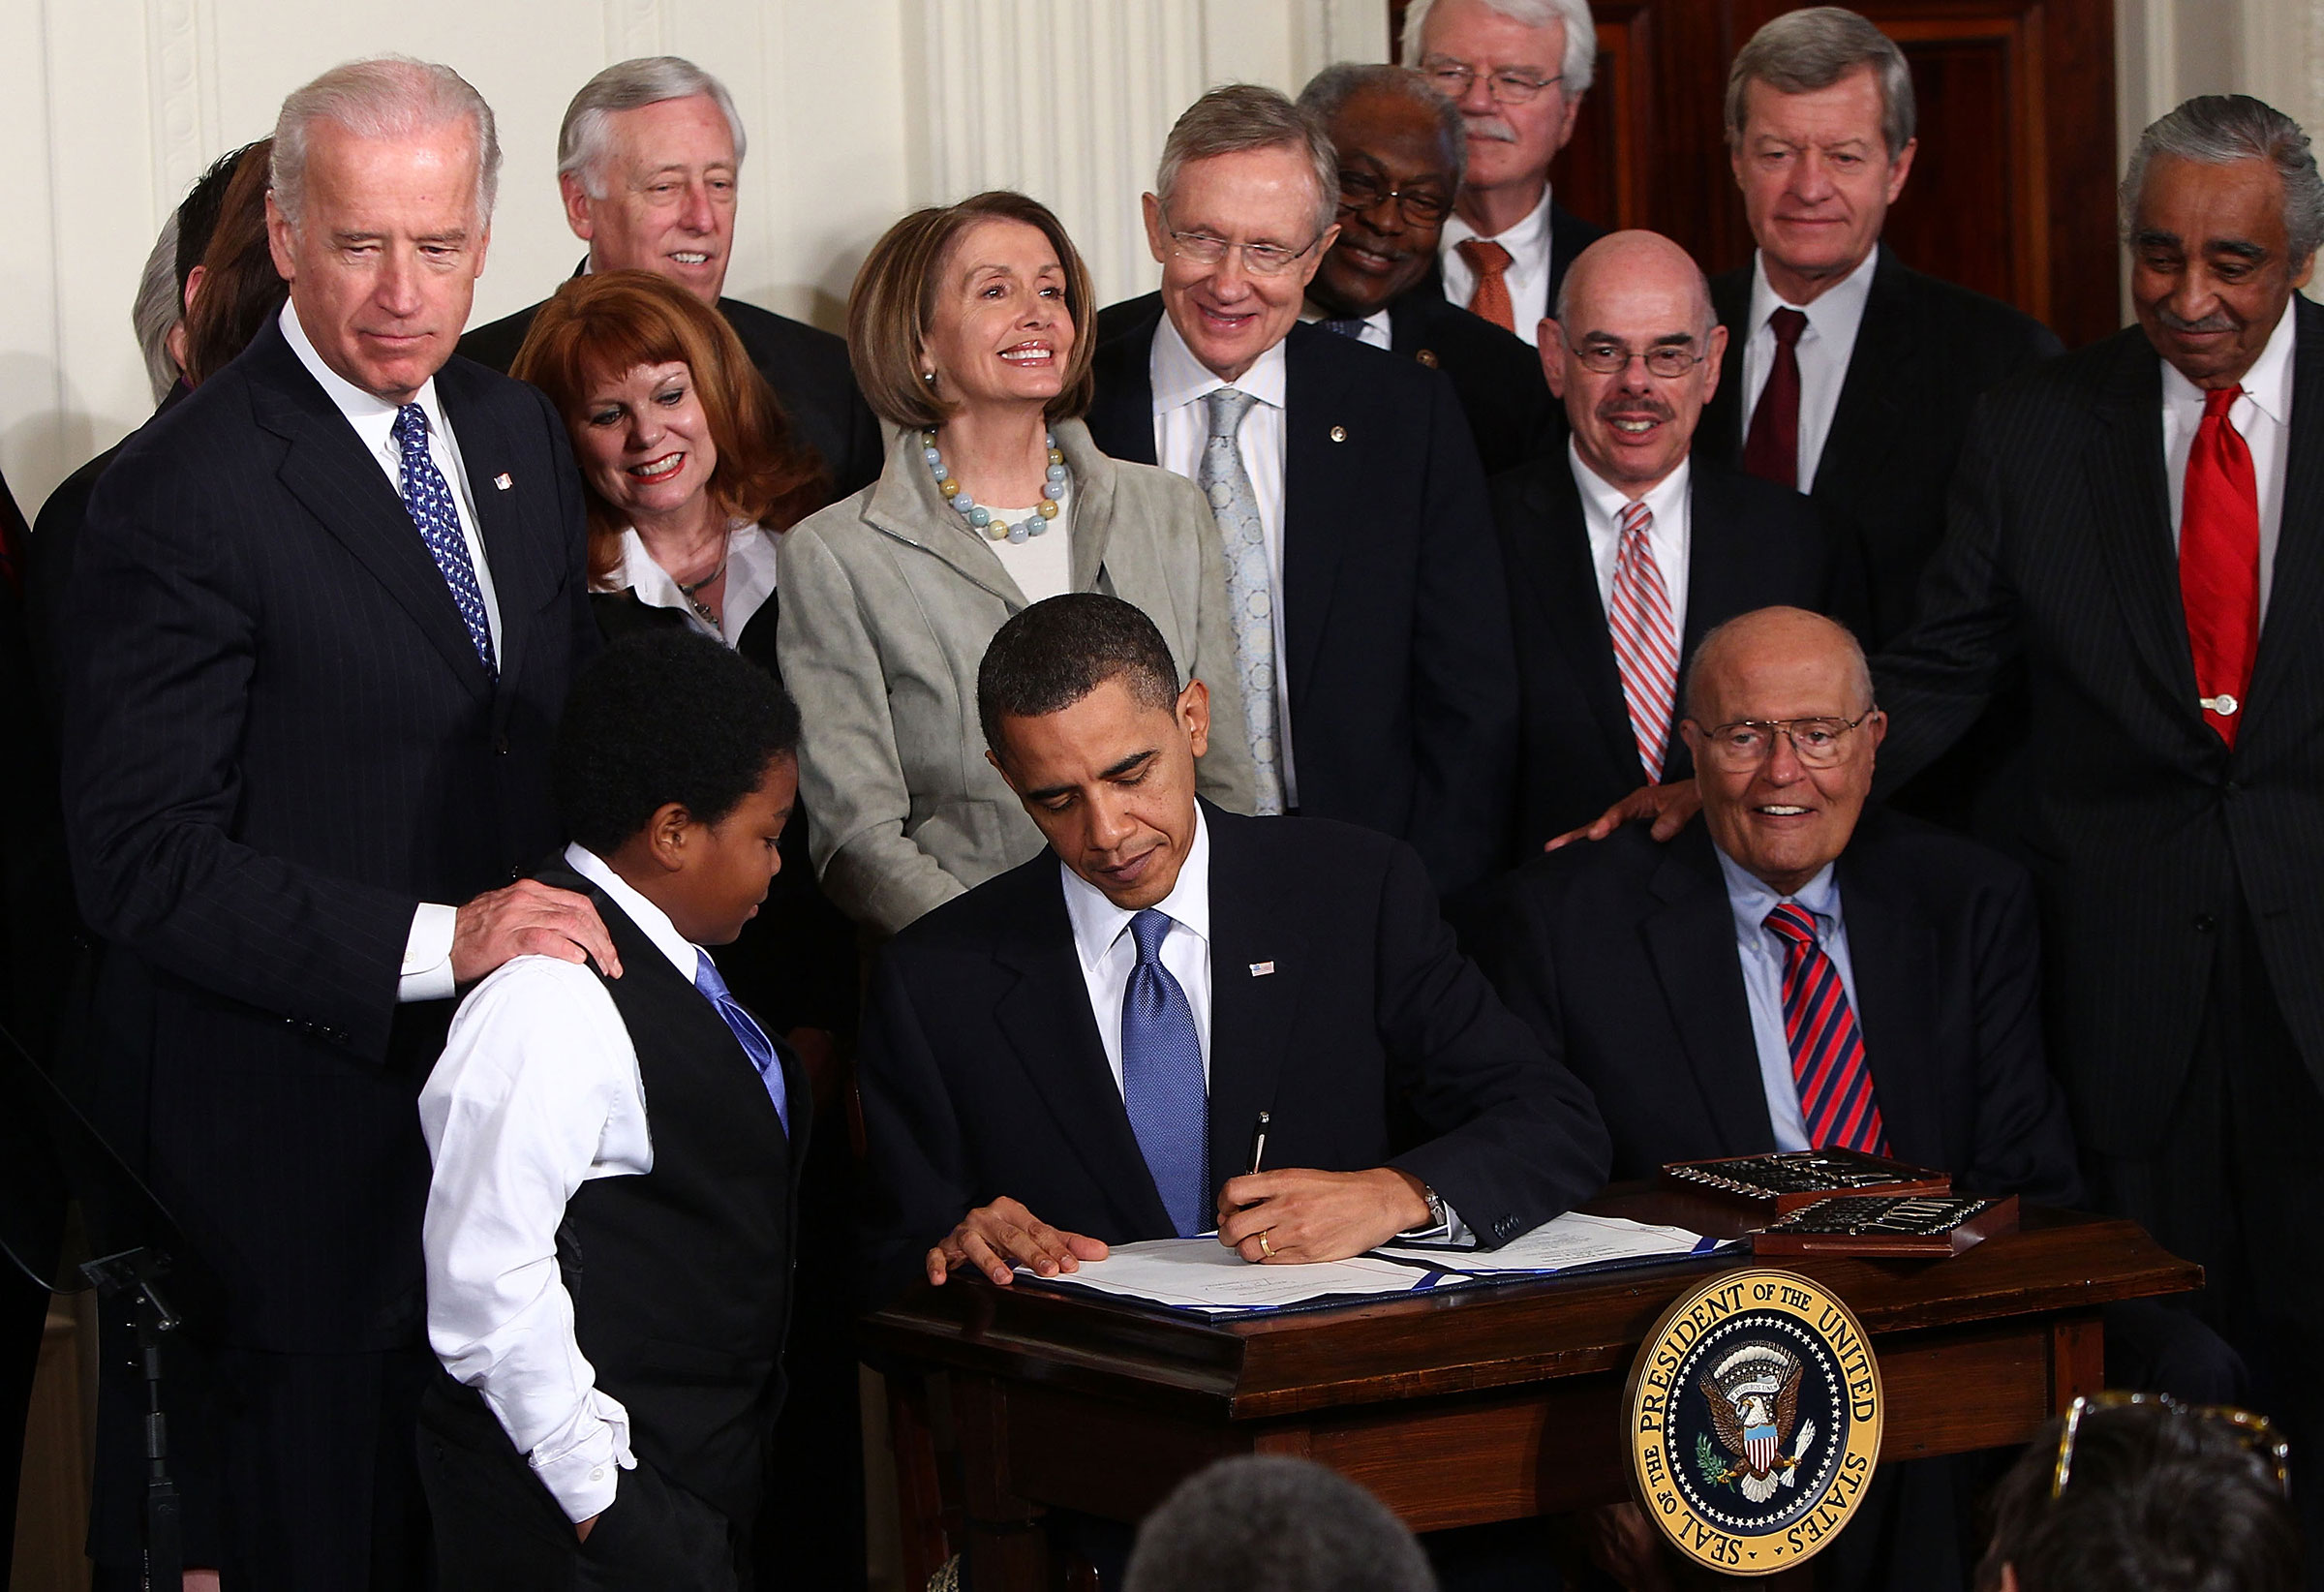 President Barack Obama signs the Affordable Health Care for America Act during a ceremony with fellow Democrats in the East Room of the White House March 23, 2010.